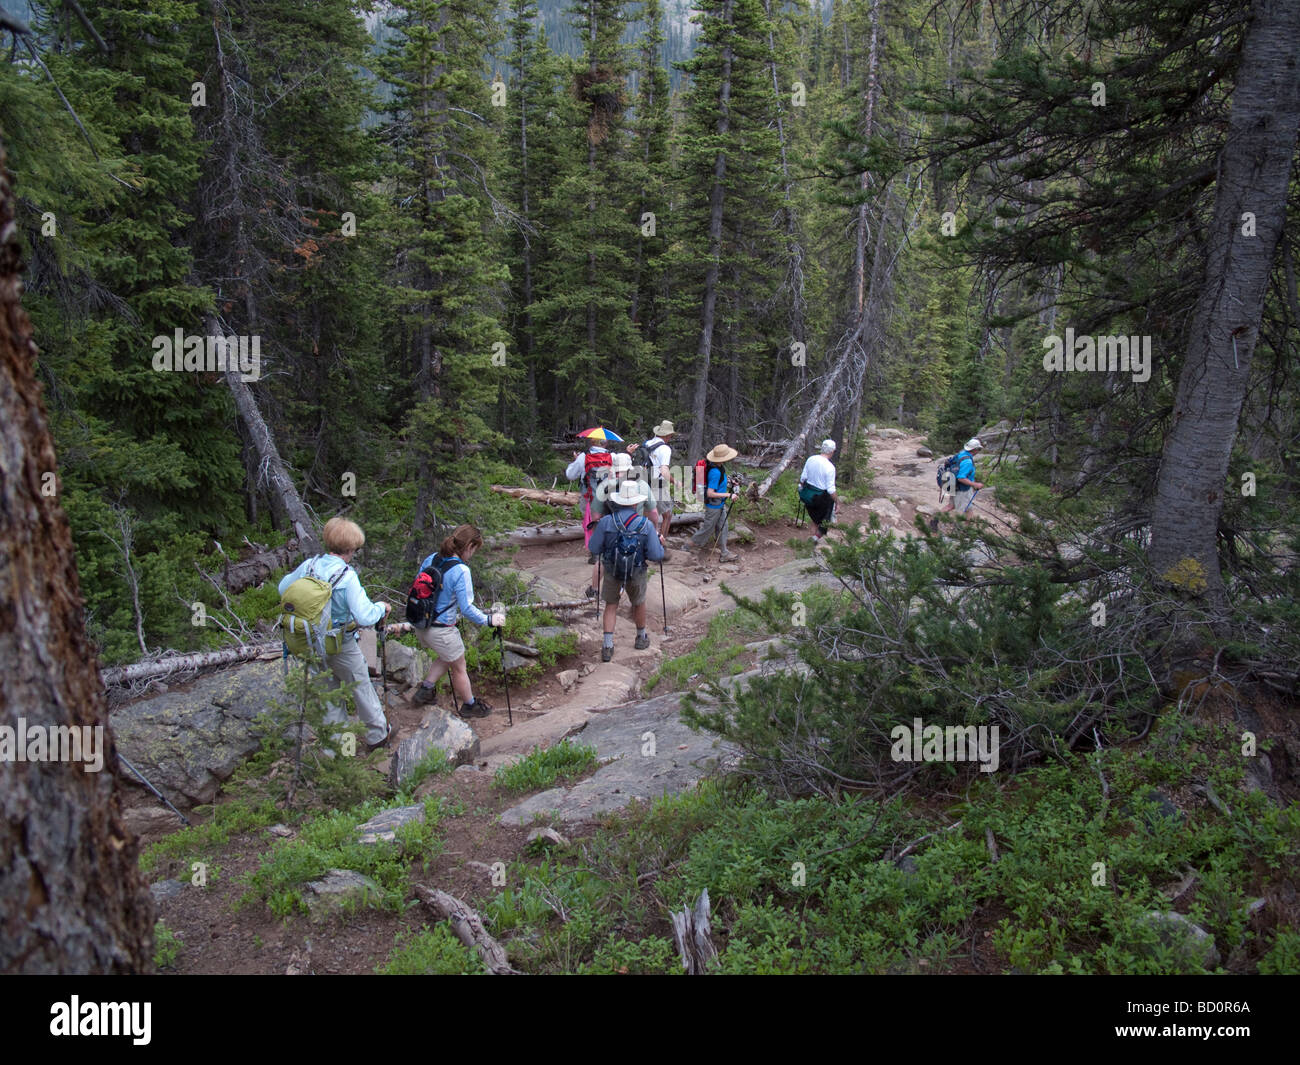 Hikers in Holy Cross Wilderness - Stock Image